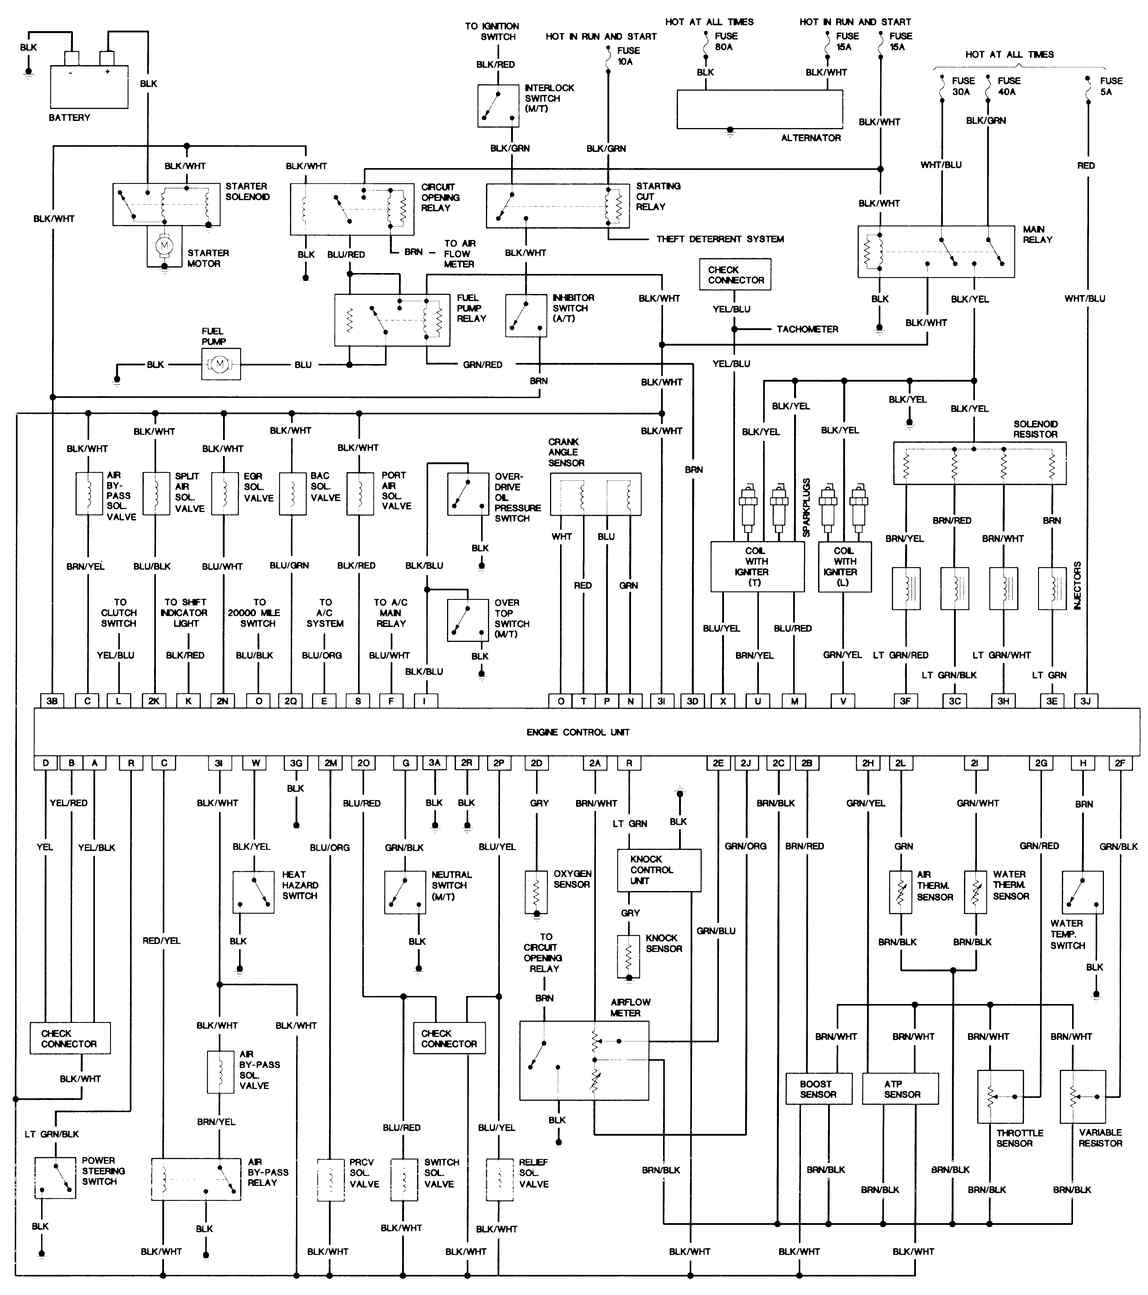 rx 7 ignition diagram wiring diagrammazda rx 7 wiring schematic wiring diagrammazda rx 7 wiring schematic wiring diagram progresifmazda rx 7